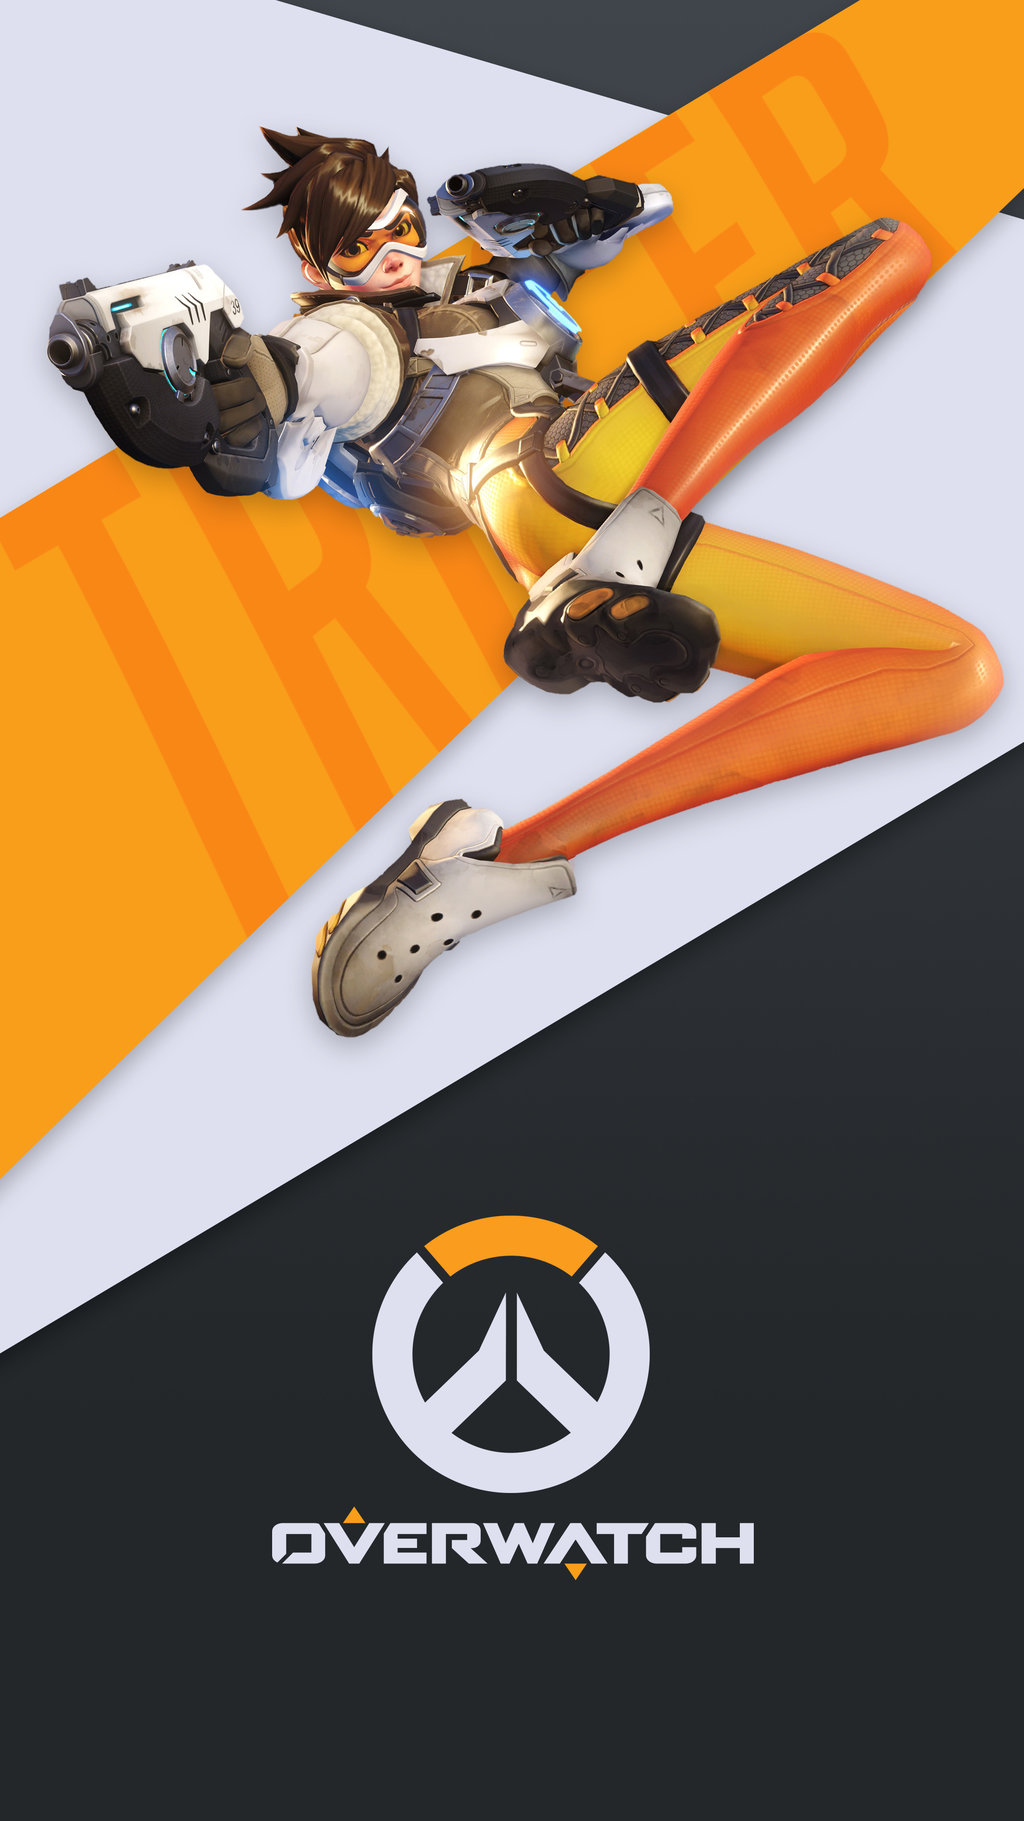 Overwatch mobile clipart picture library Download Tracer HD Wallpaper Overwatch Game 1920x1080 | Pic ... picture library